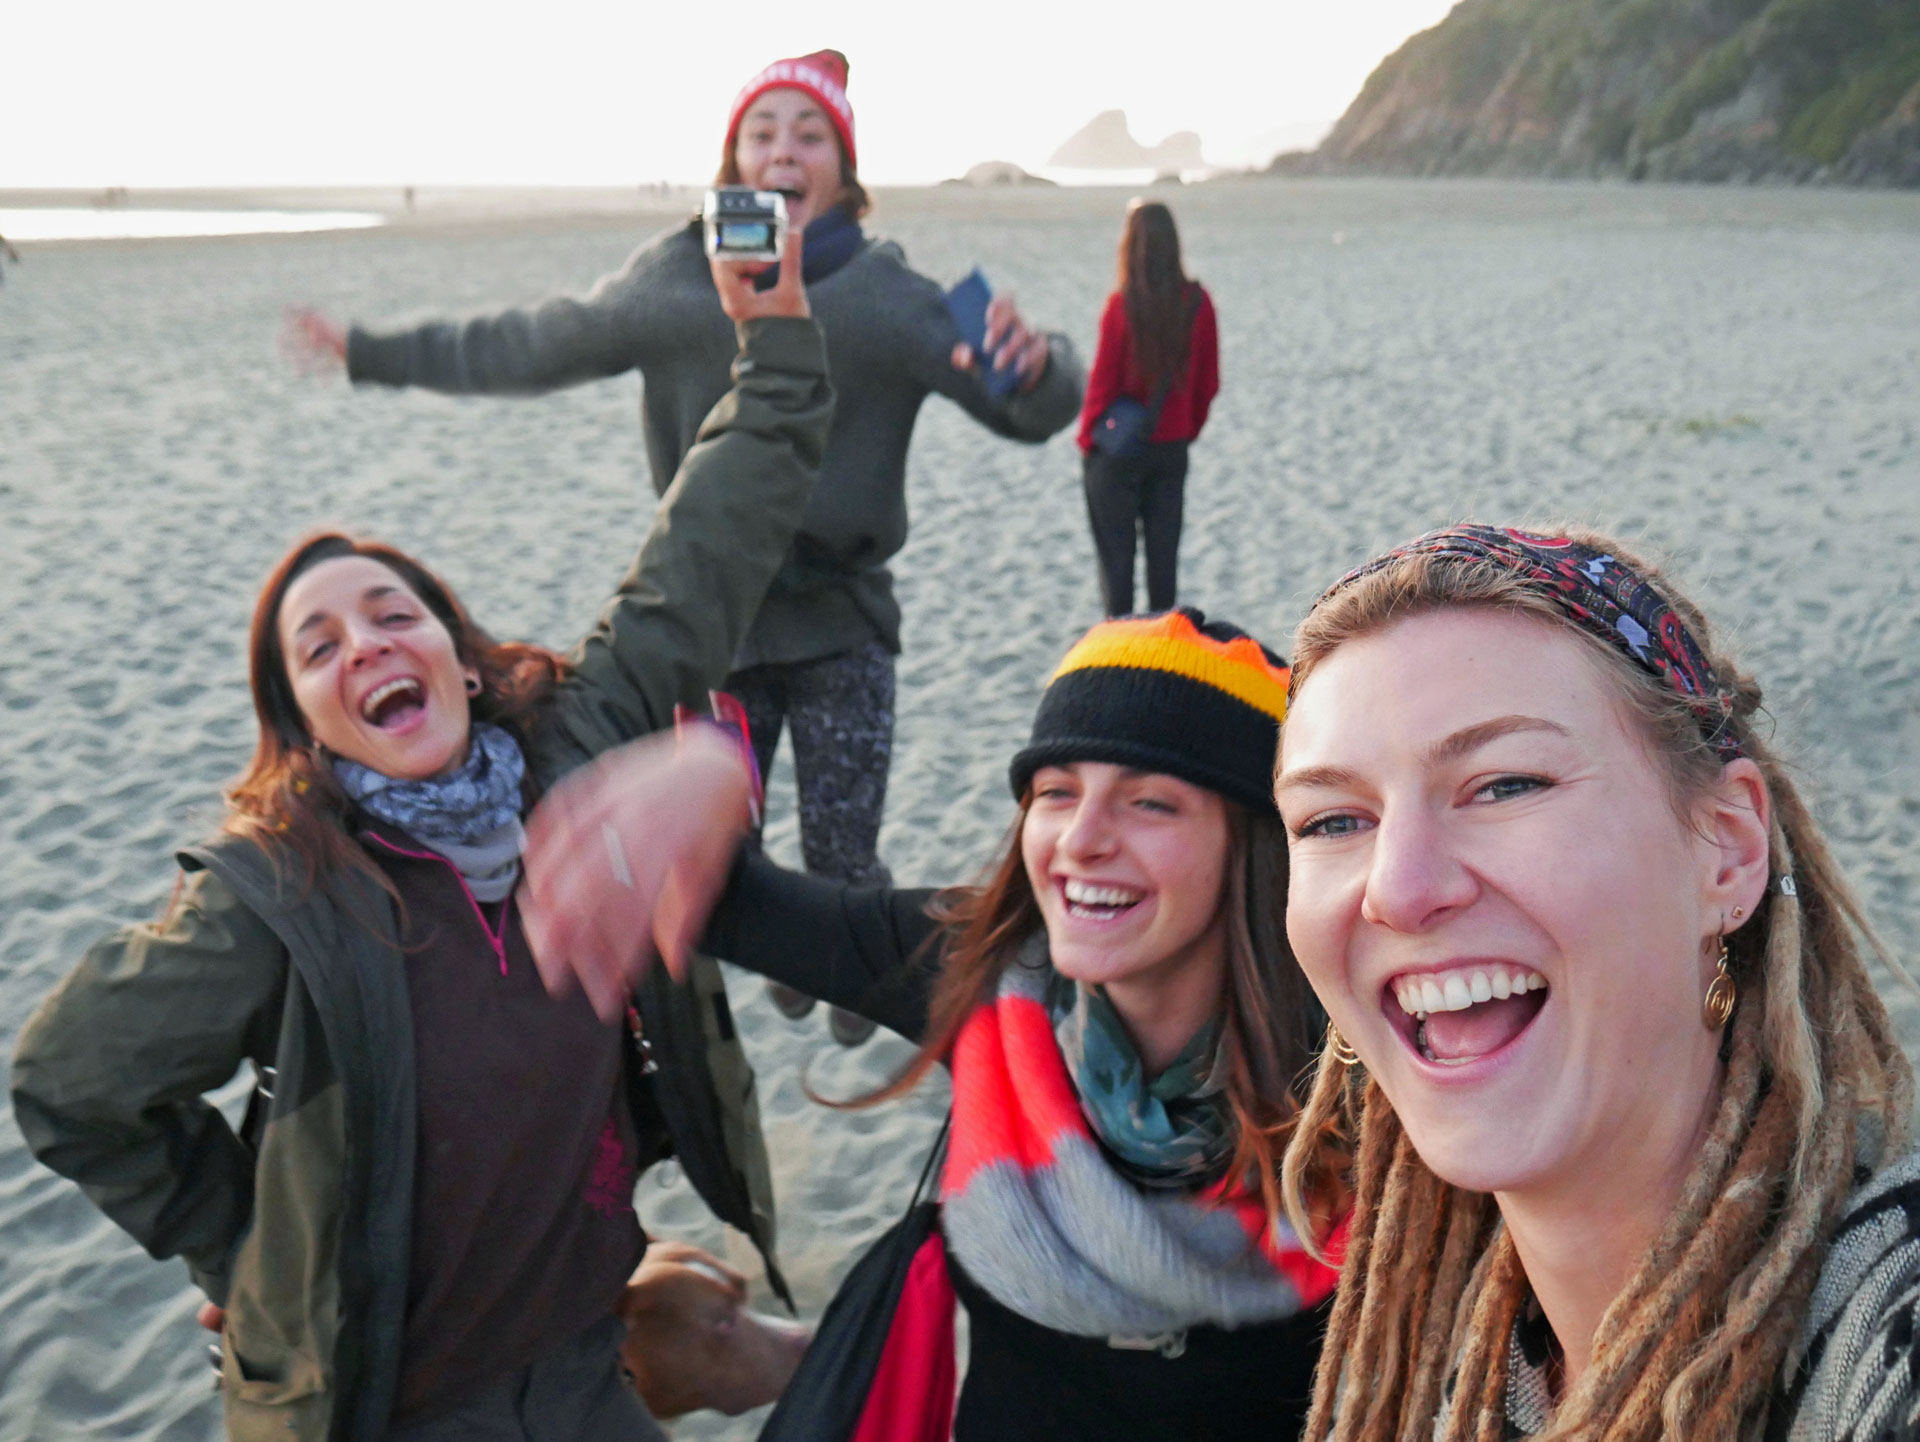 Friends having good time at Moonstone Beach in Northern California